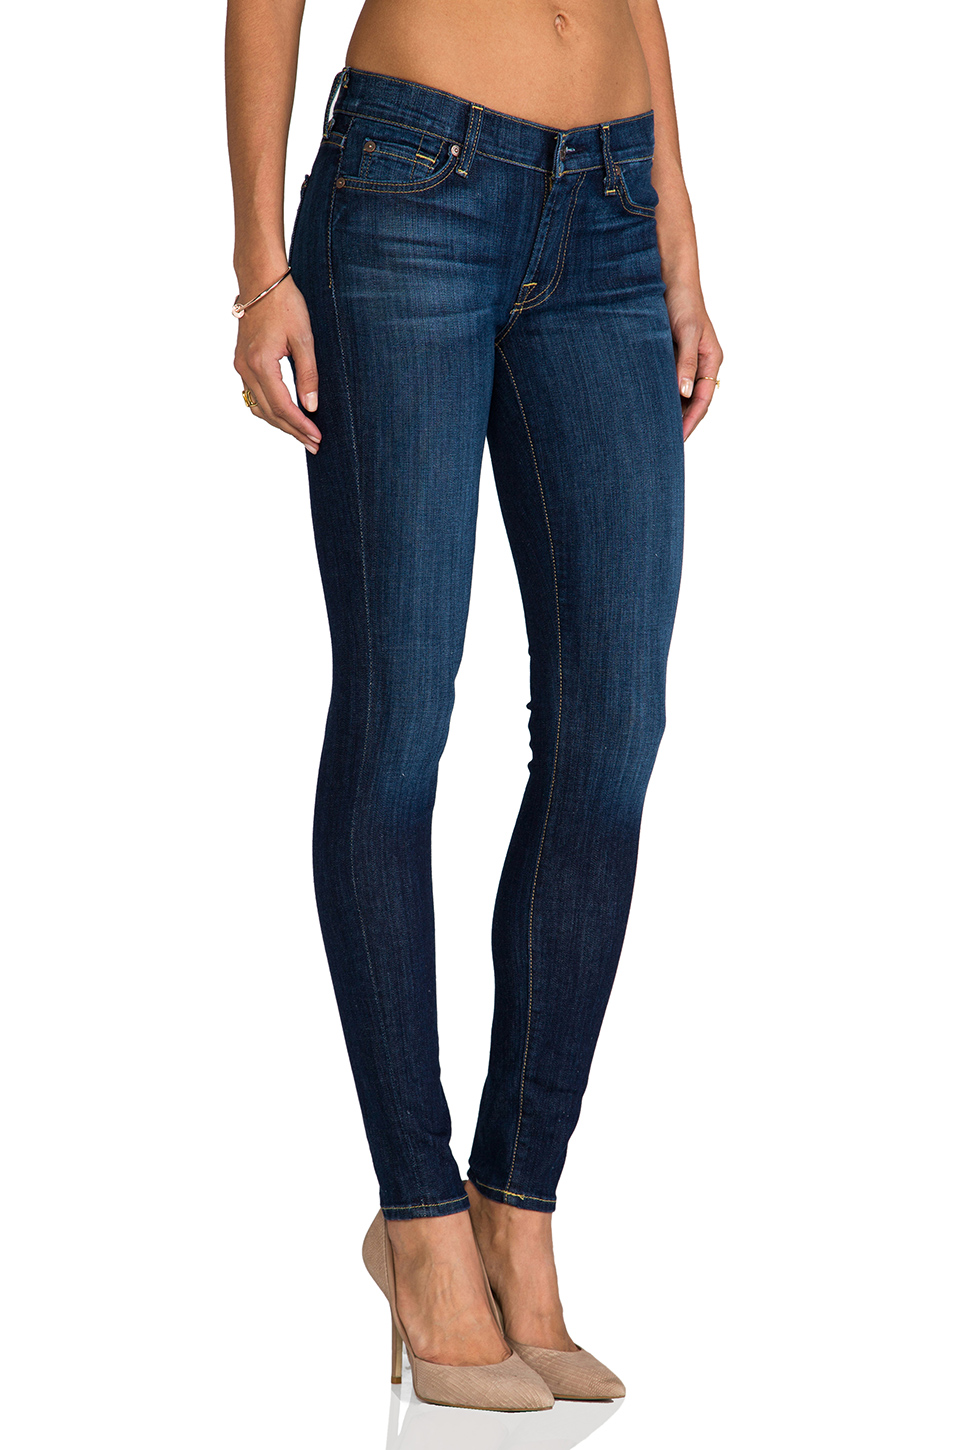 7 For All Mankind The Skinny in Nouveau New York Dark